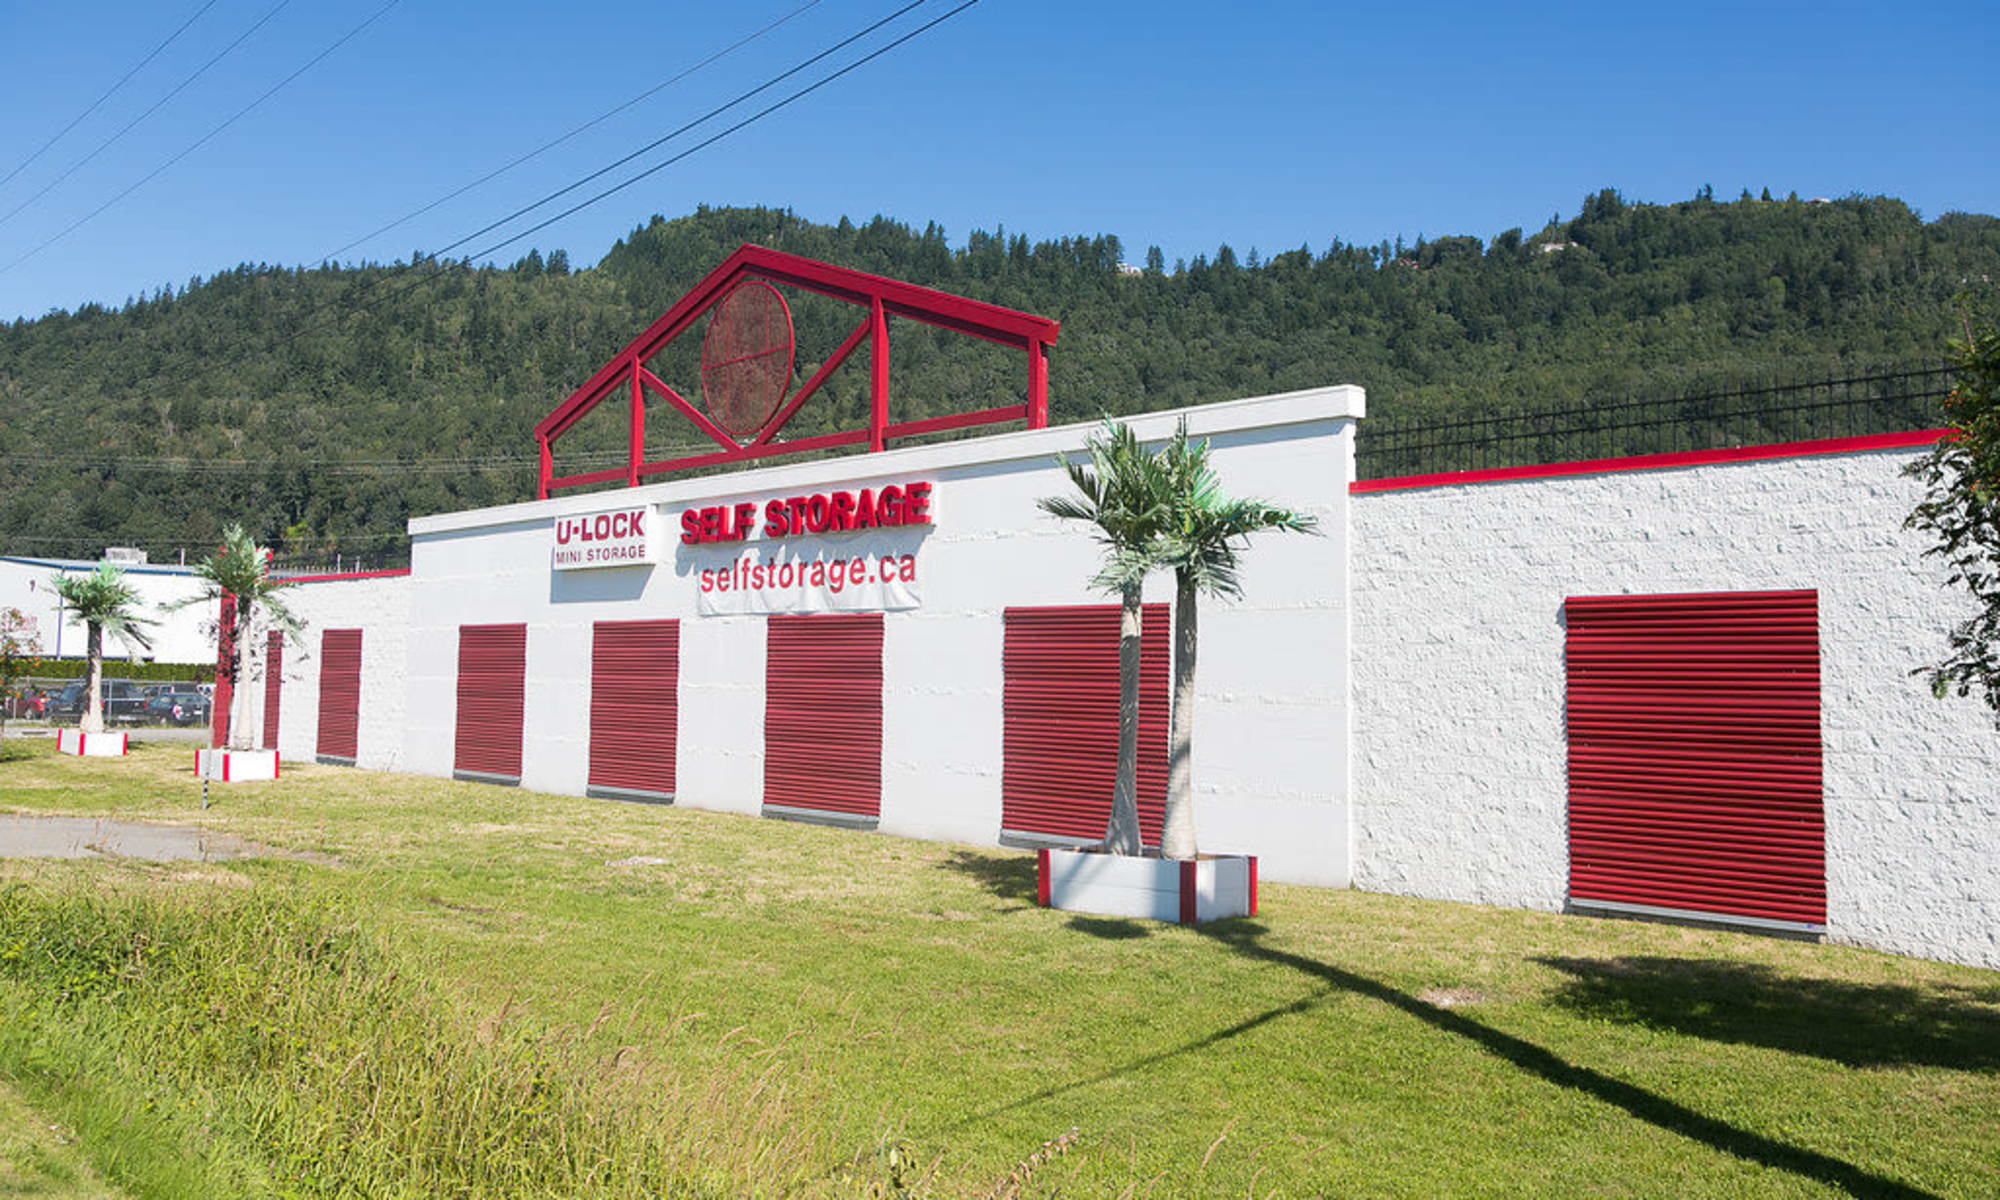 Self storage in Chilliwack, BC